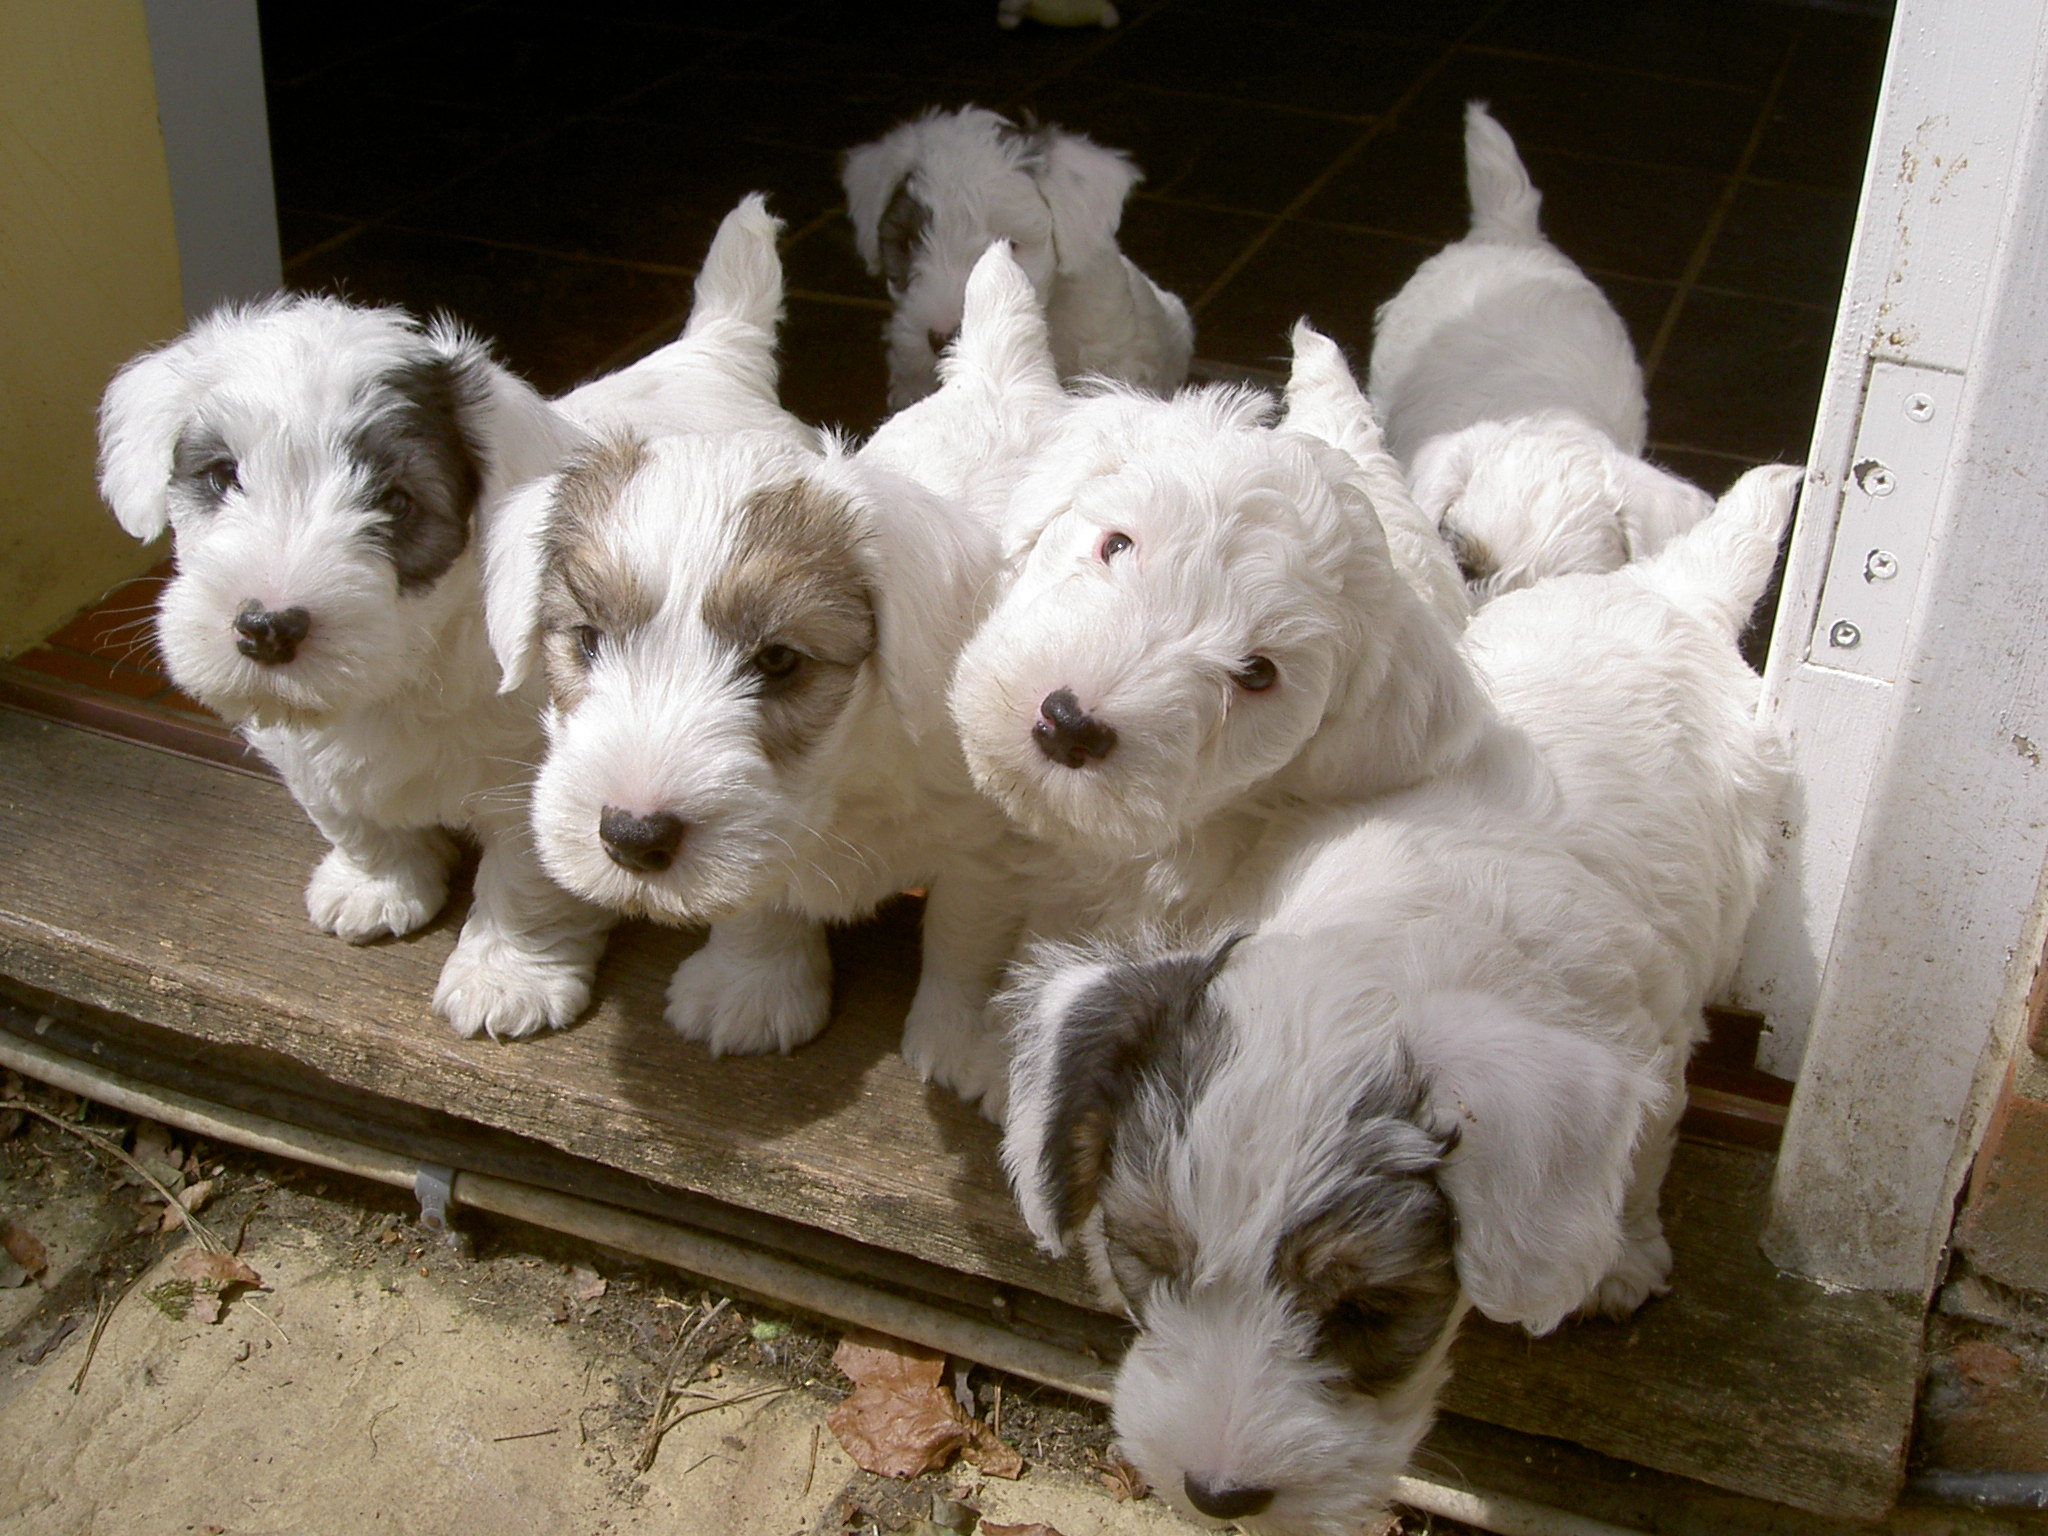 Sealyham Terrier Dog: Sealyham Sealyham Terrier Puppies Breed